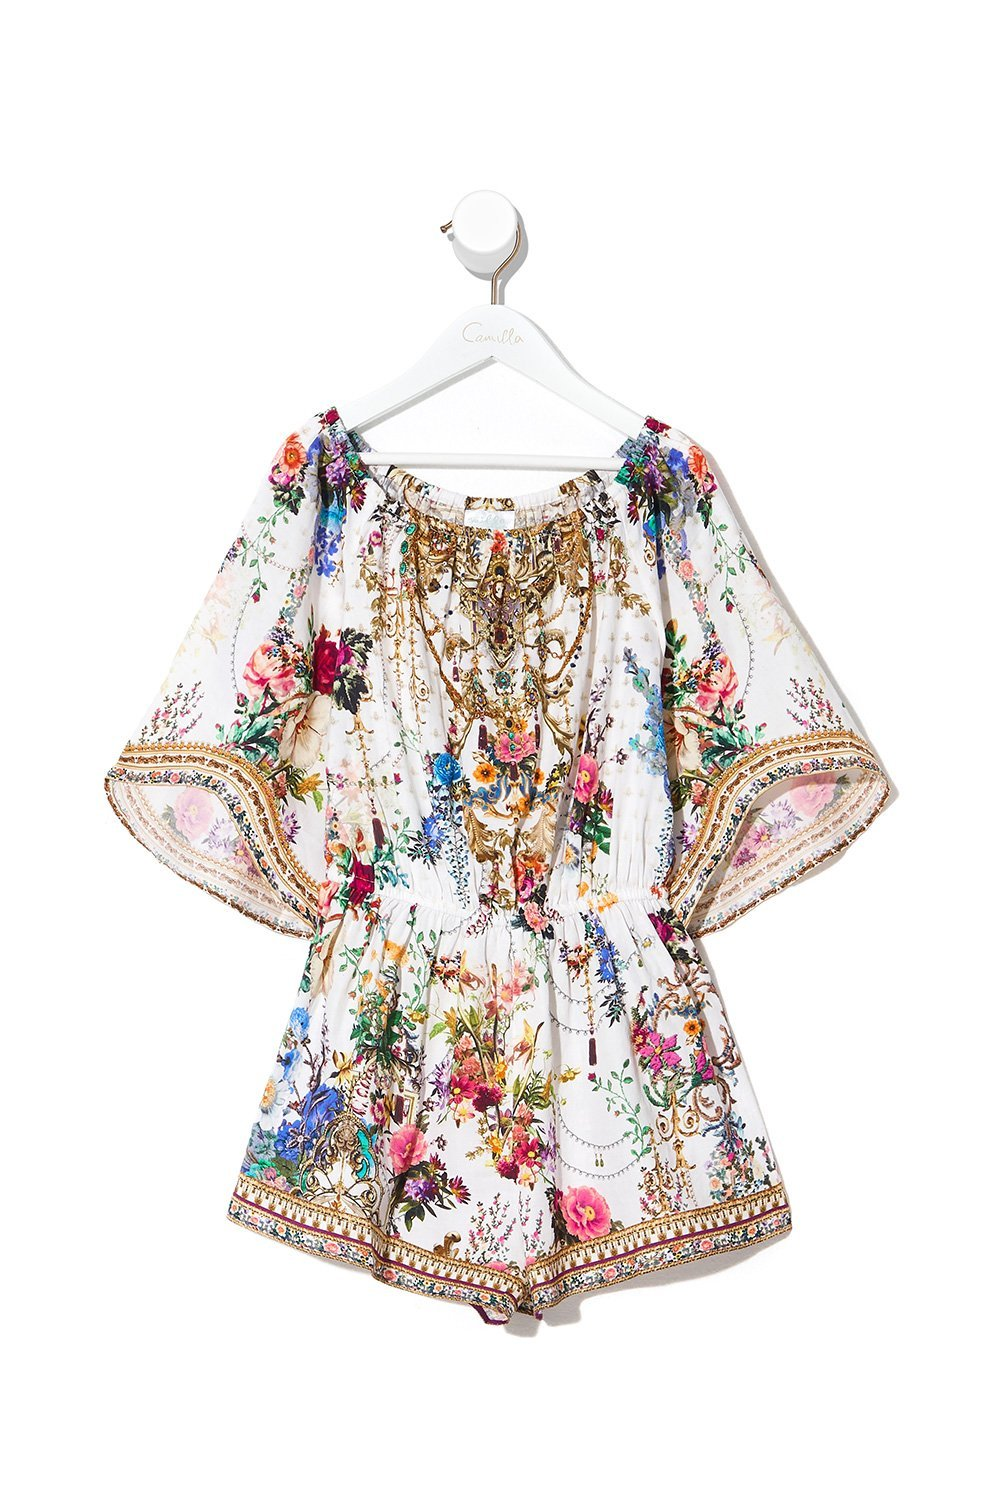 KIDS 3/4 FLARE SLEEVE PLAYSUIT 4-10 BY THE MEADOW